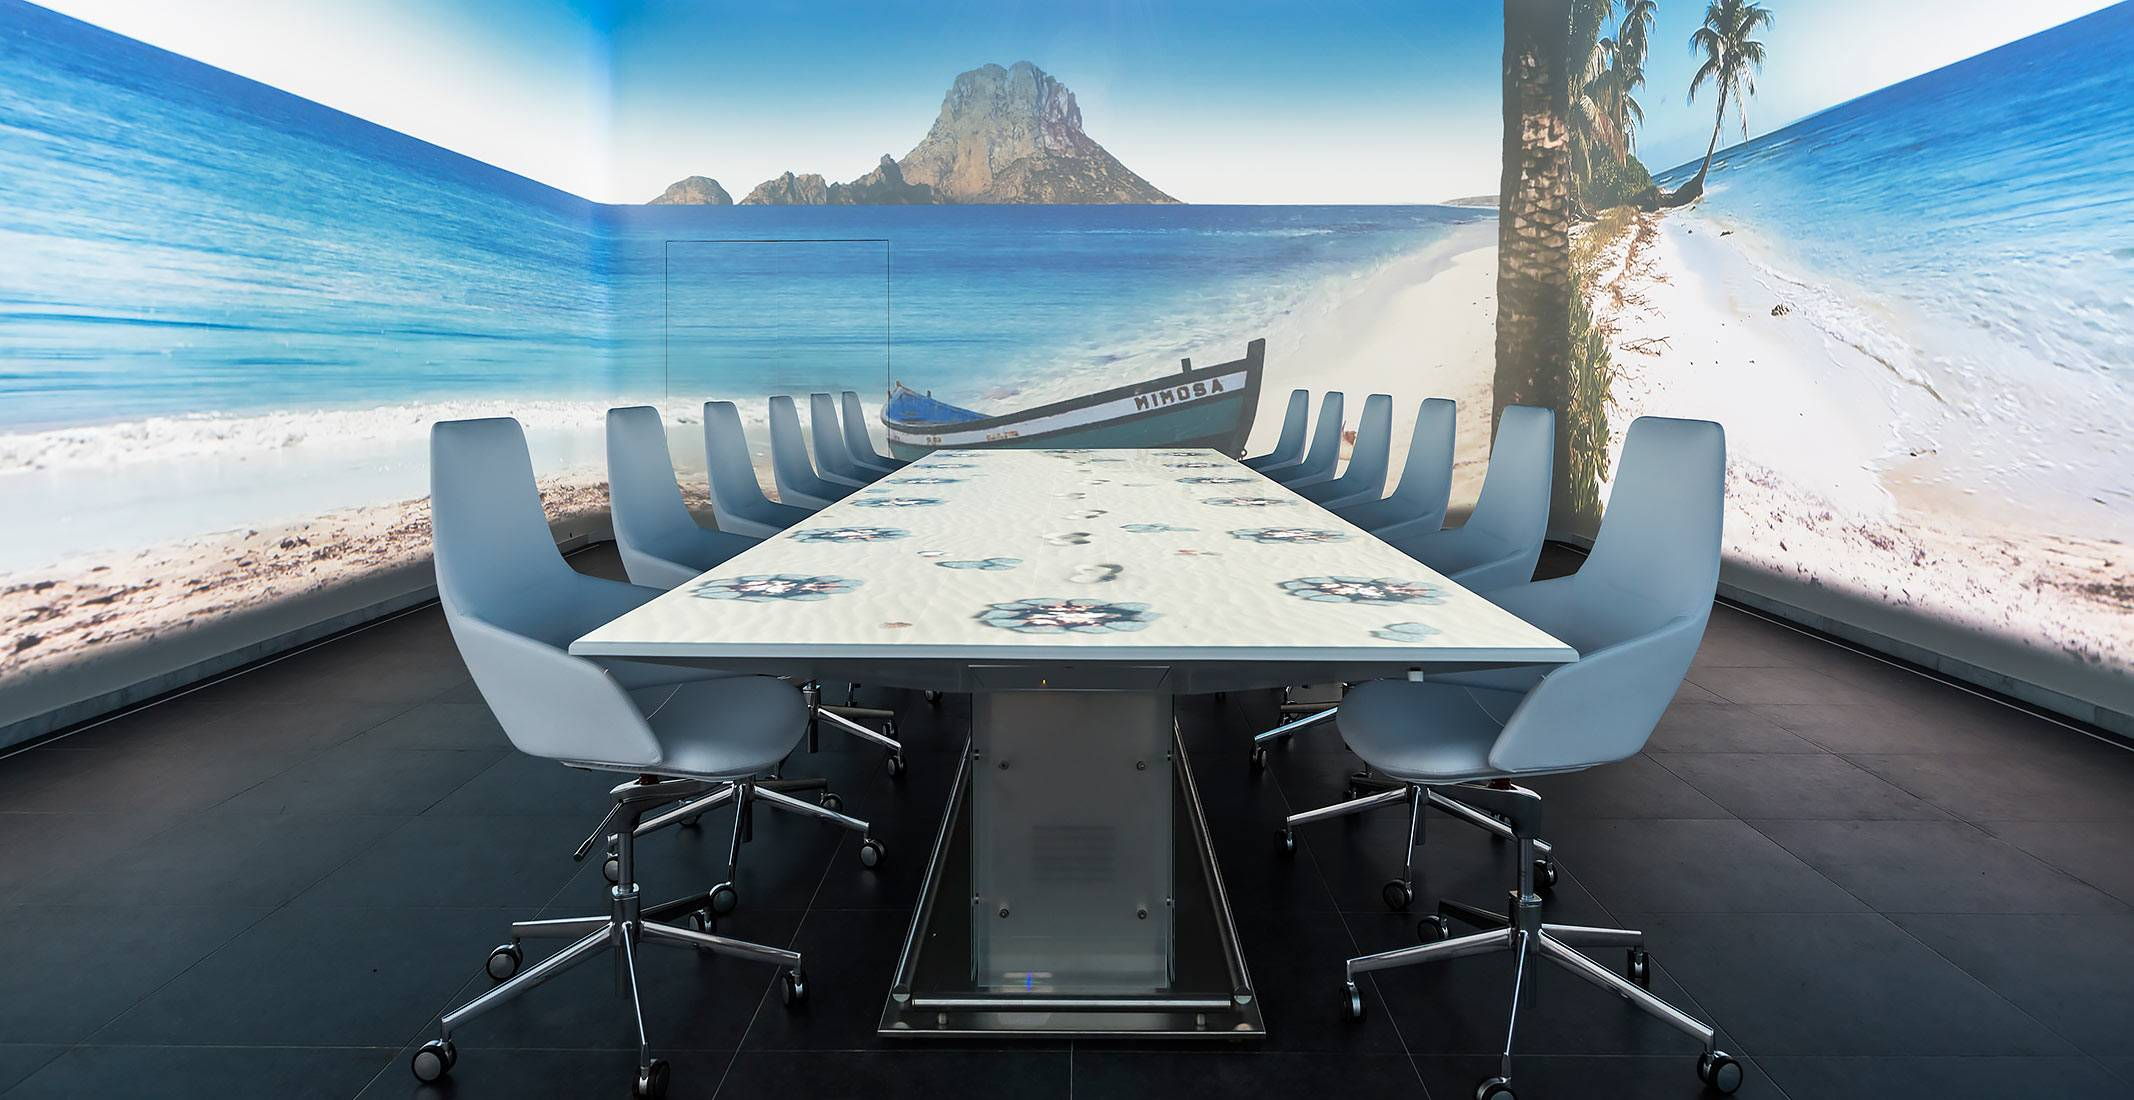 The Most Expensive Restaurant In The World Is In Ibiza